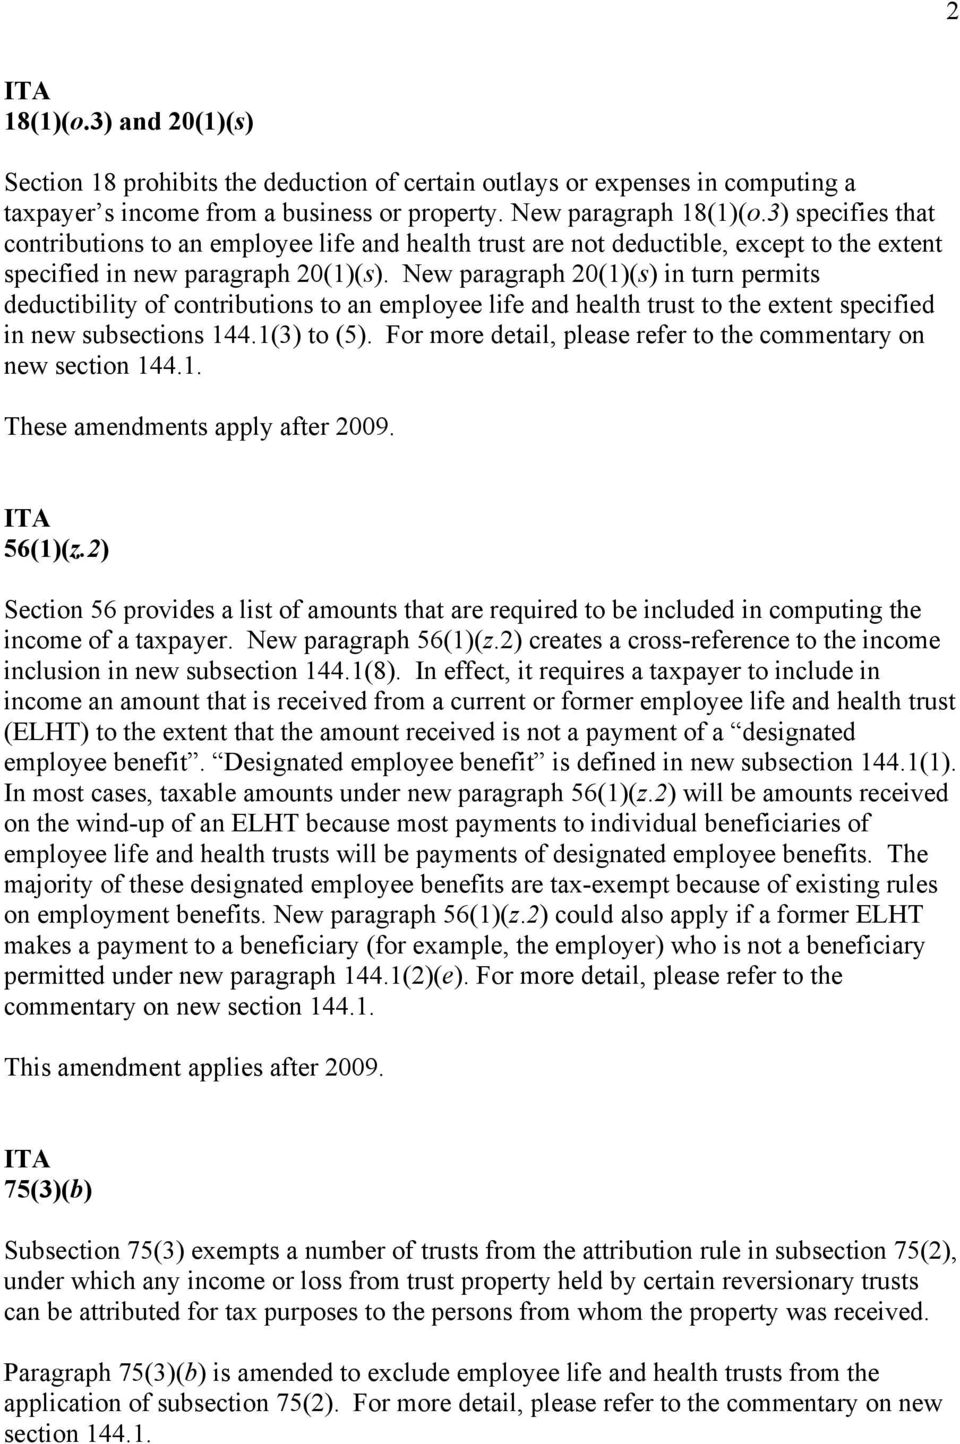 New paragraph 20(1)(s) in turn permits deductibility of contributions to an employee life and health trust to the extent specified in new subsections 144.1(3) to (5).